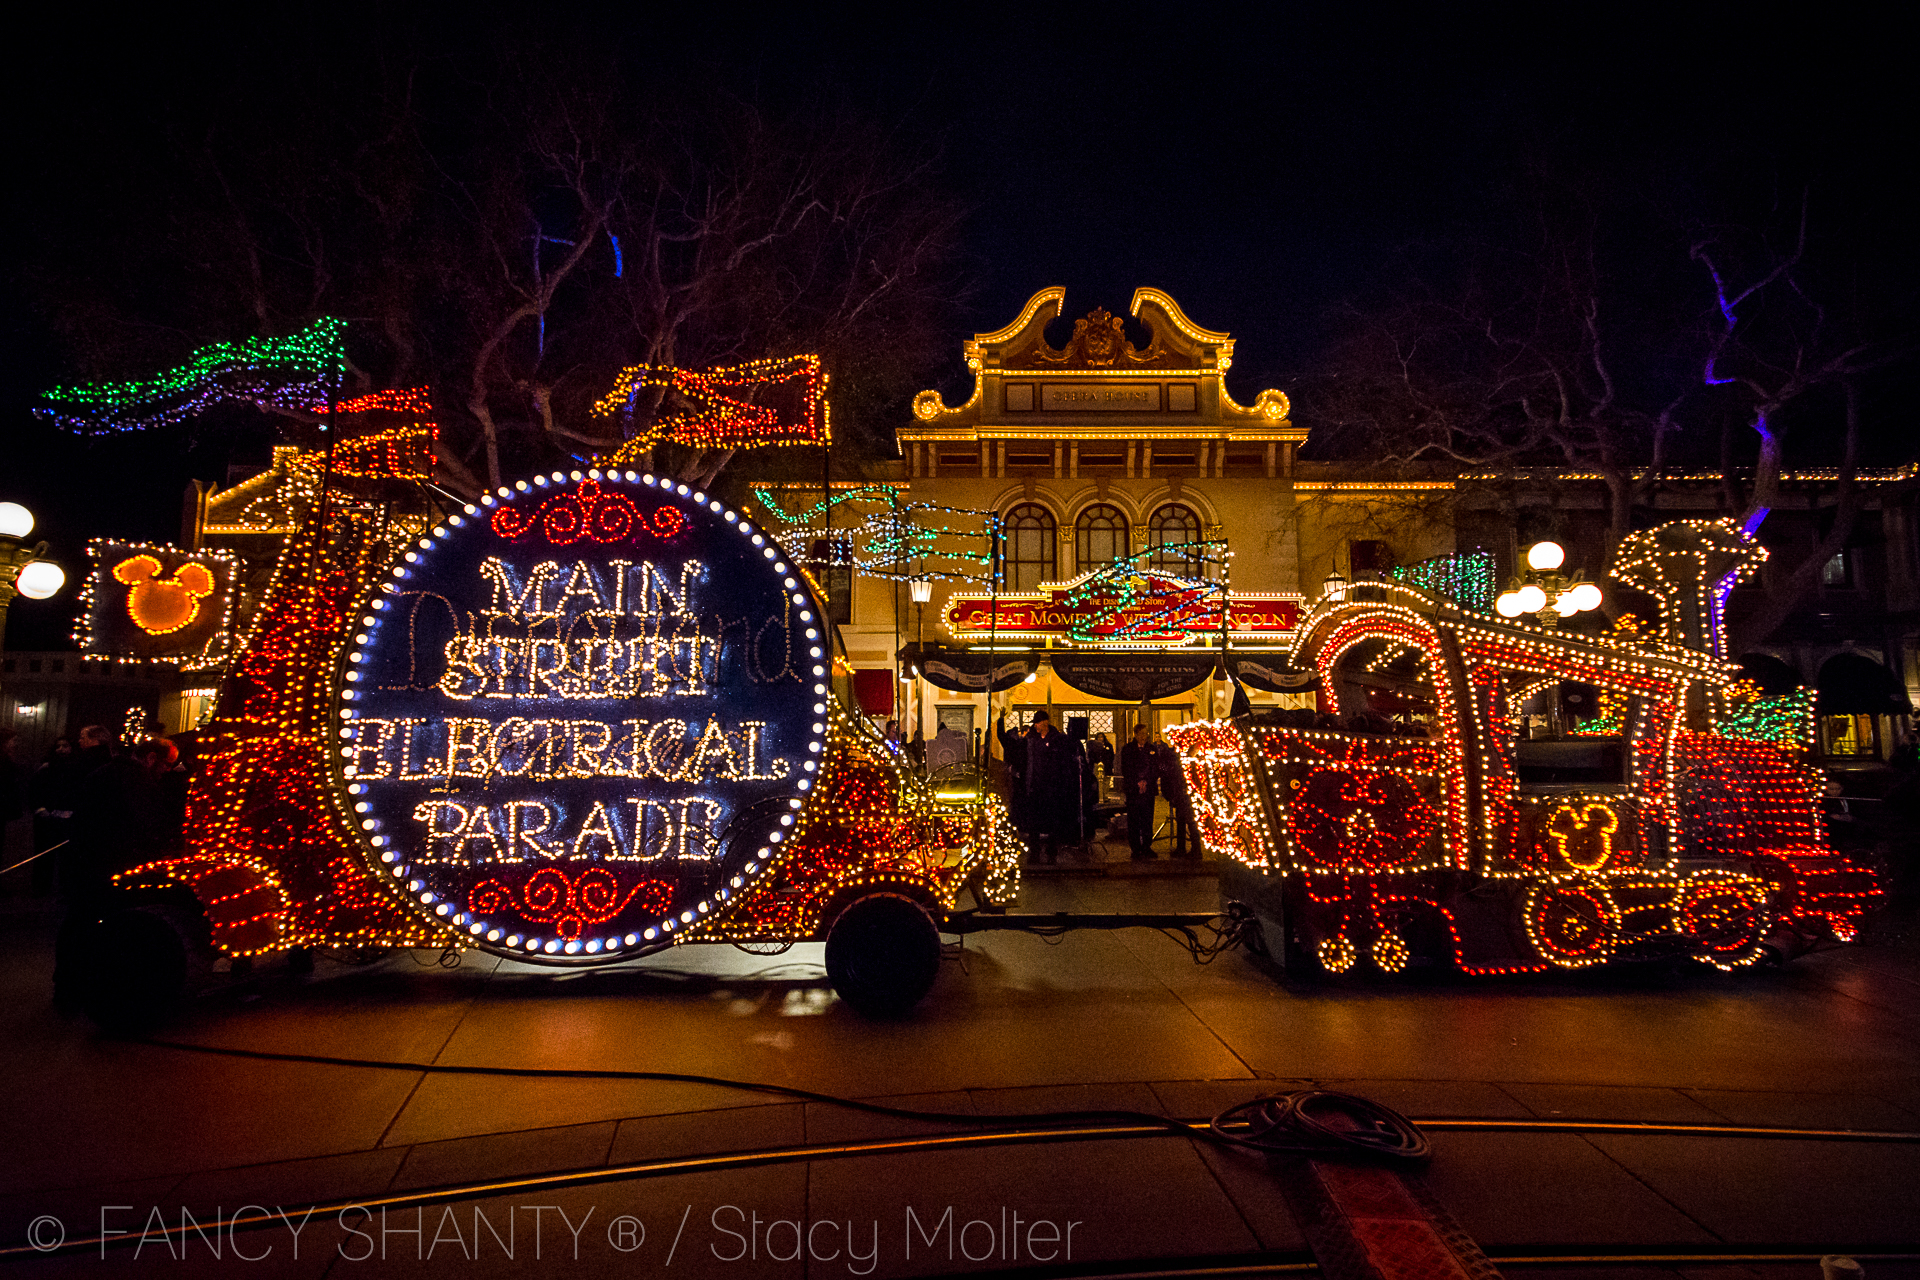 Disneyland's Iconic Main Street Electrical Parade Returns Home